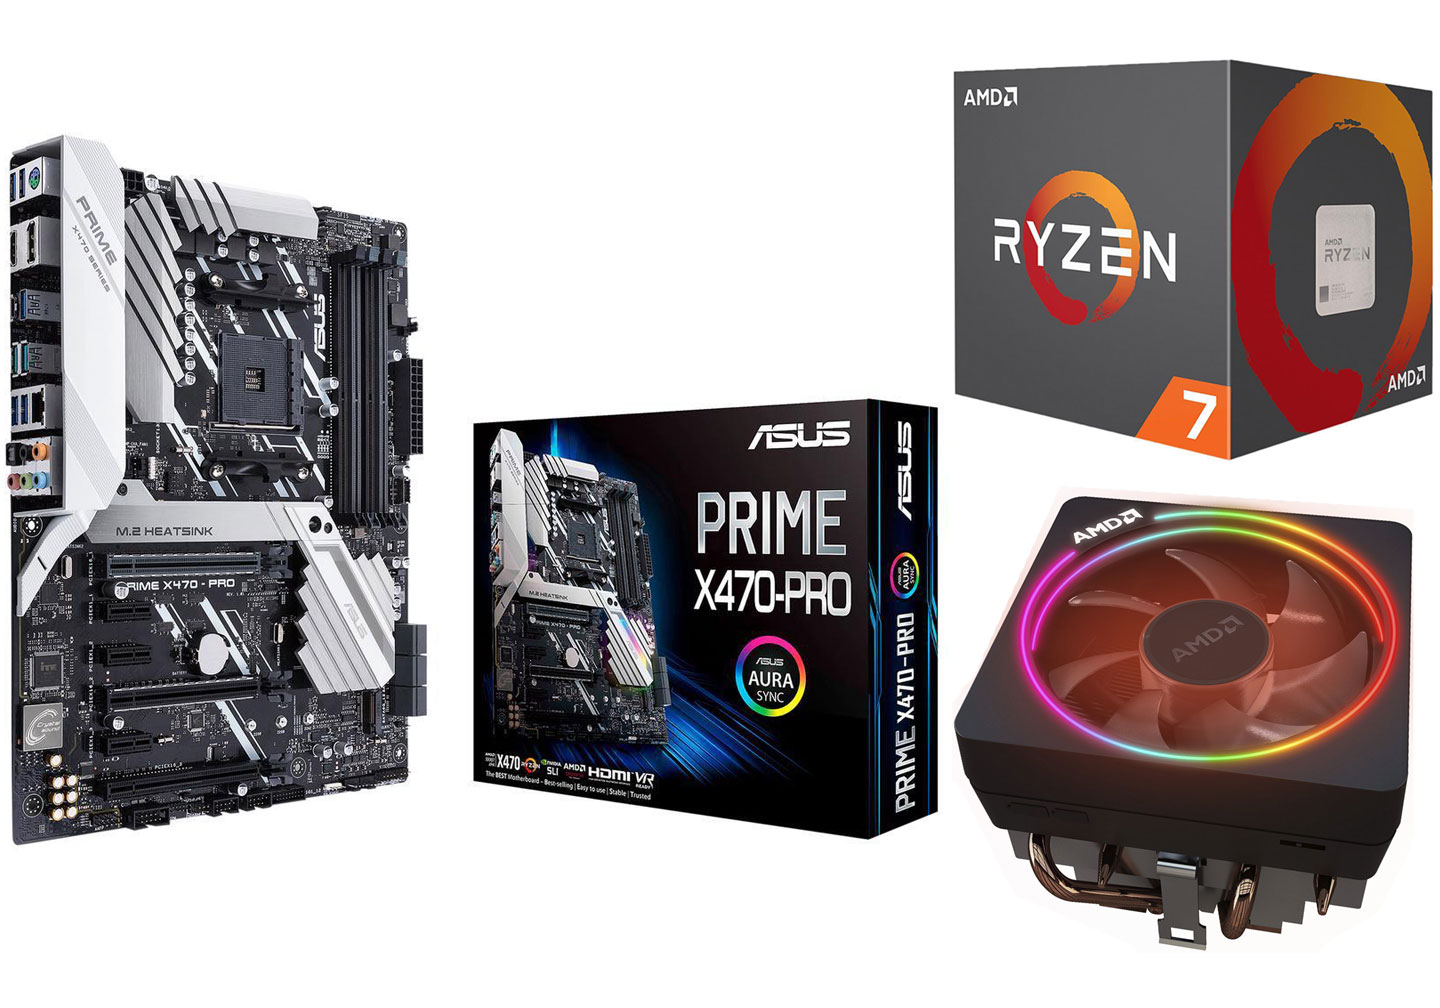 AMD Ryzen 7 2700 X Asus Prime X470-Pro Motherboard and CPU Combo